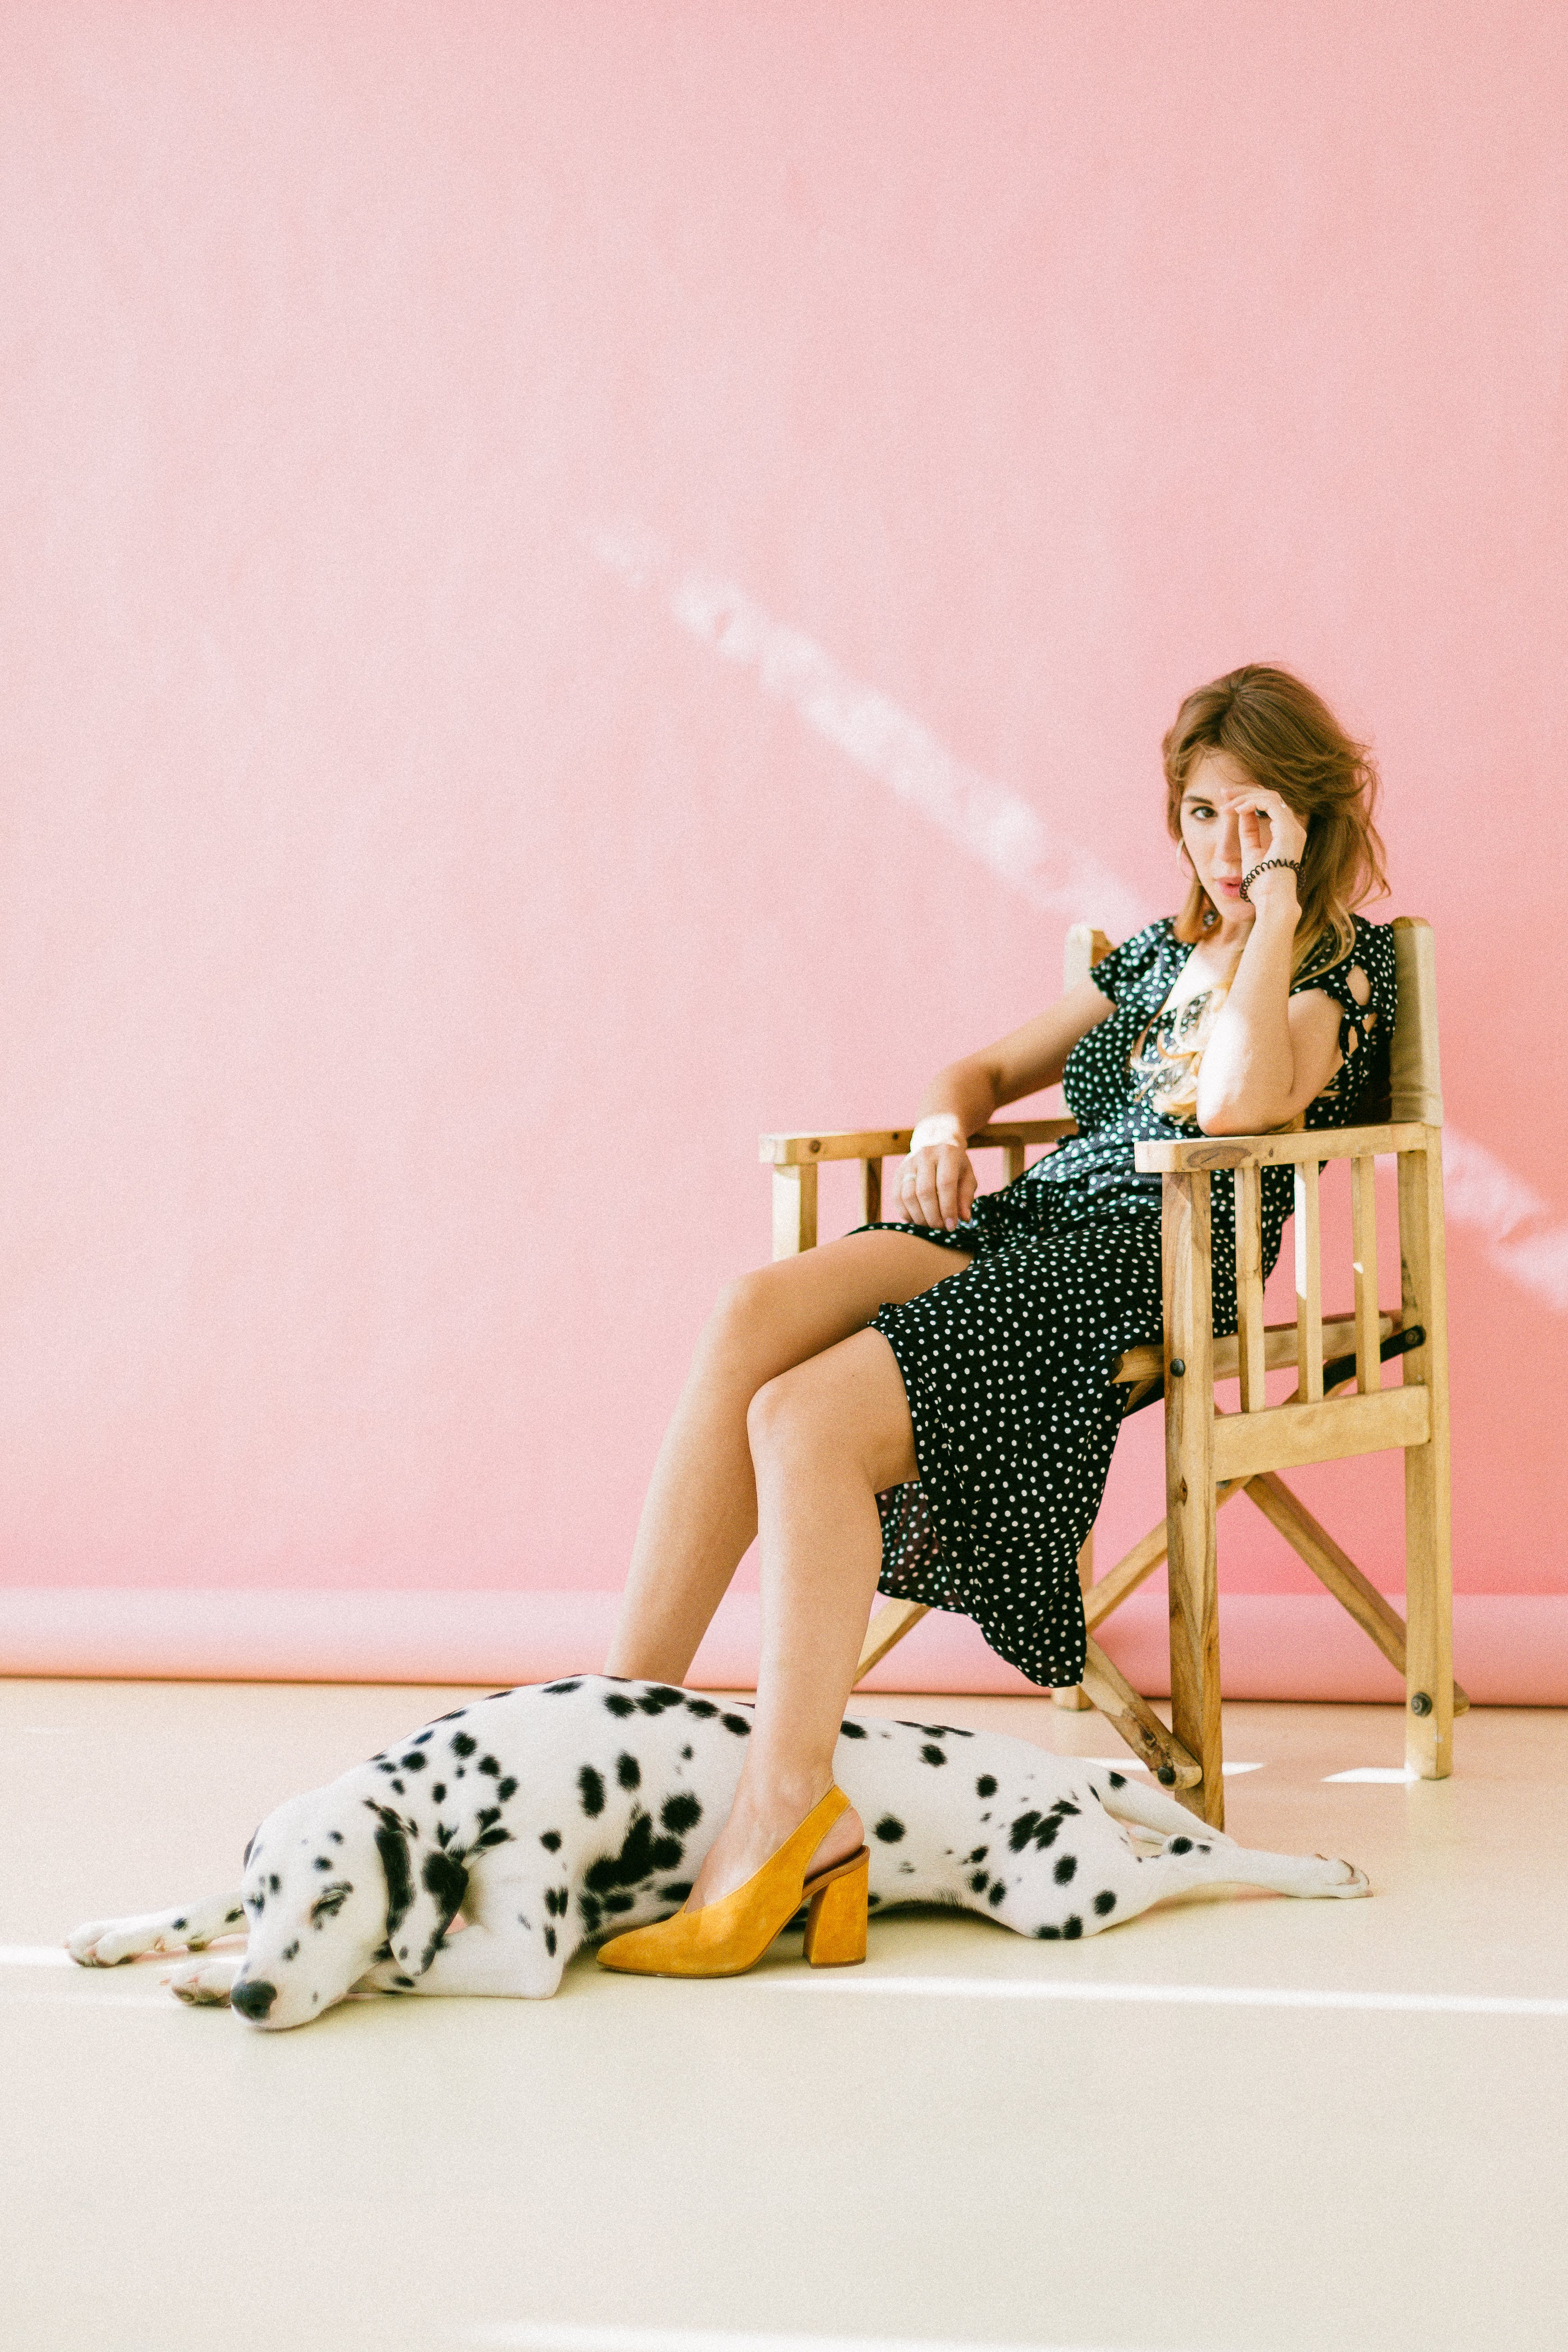 Woman Sitting On Chair With Dalmatian